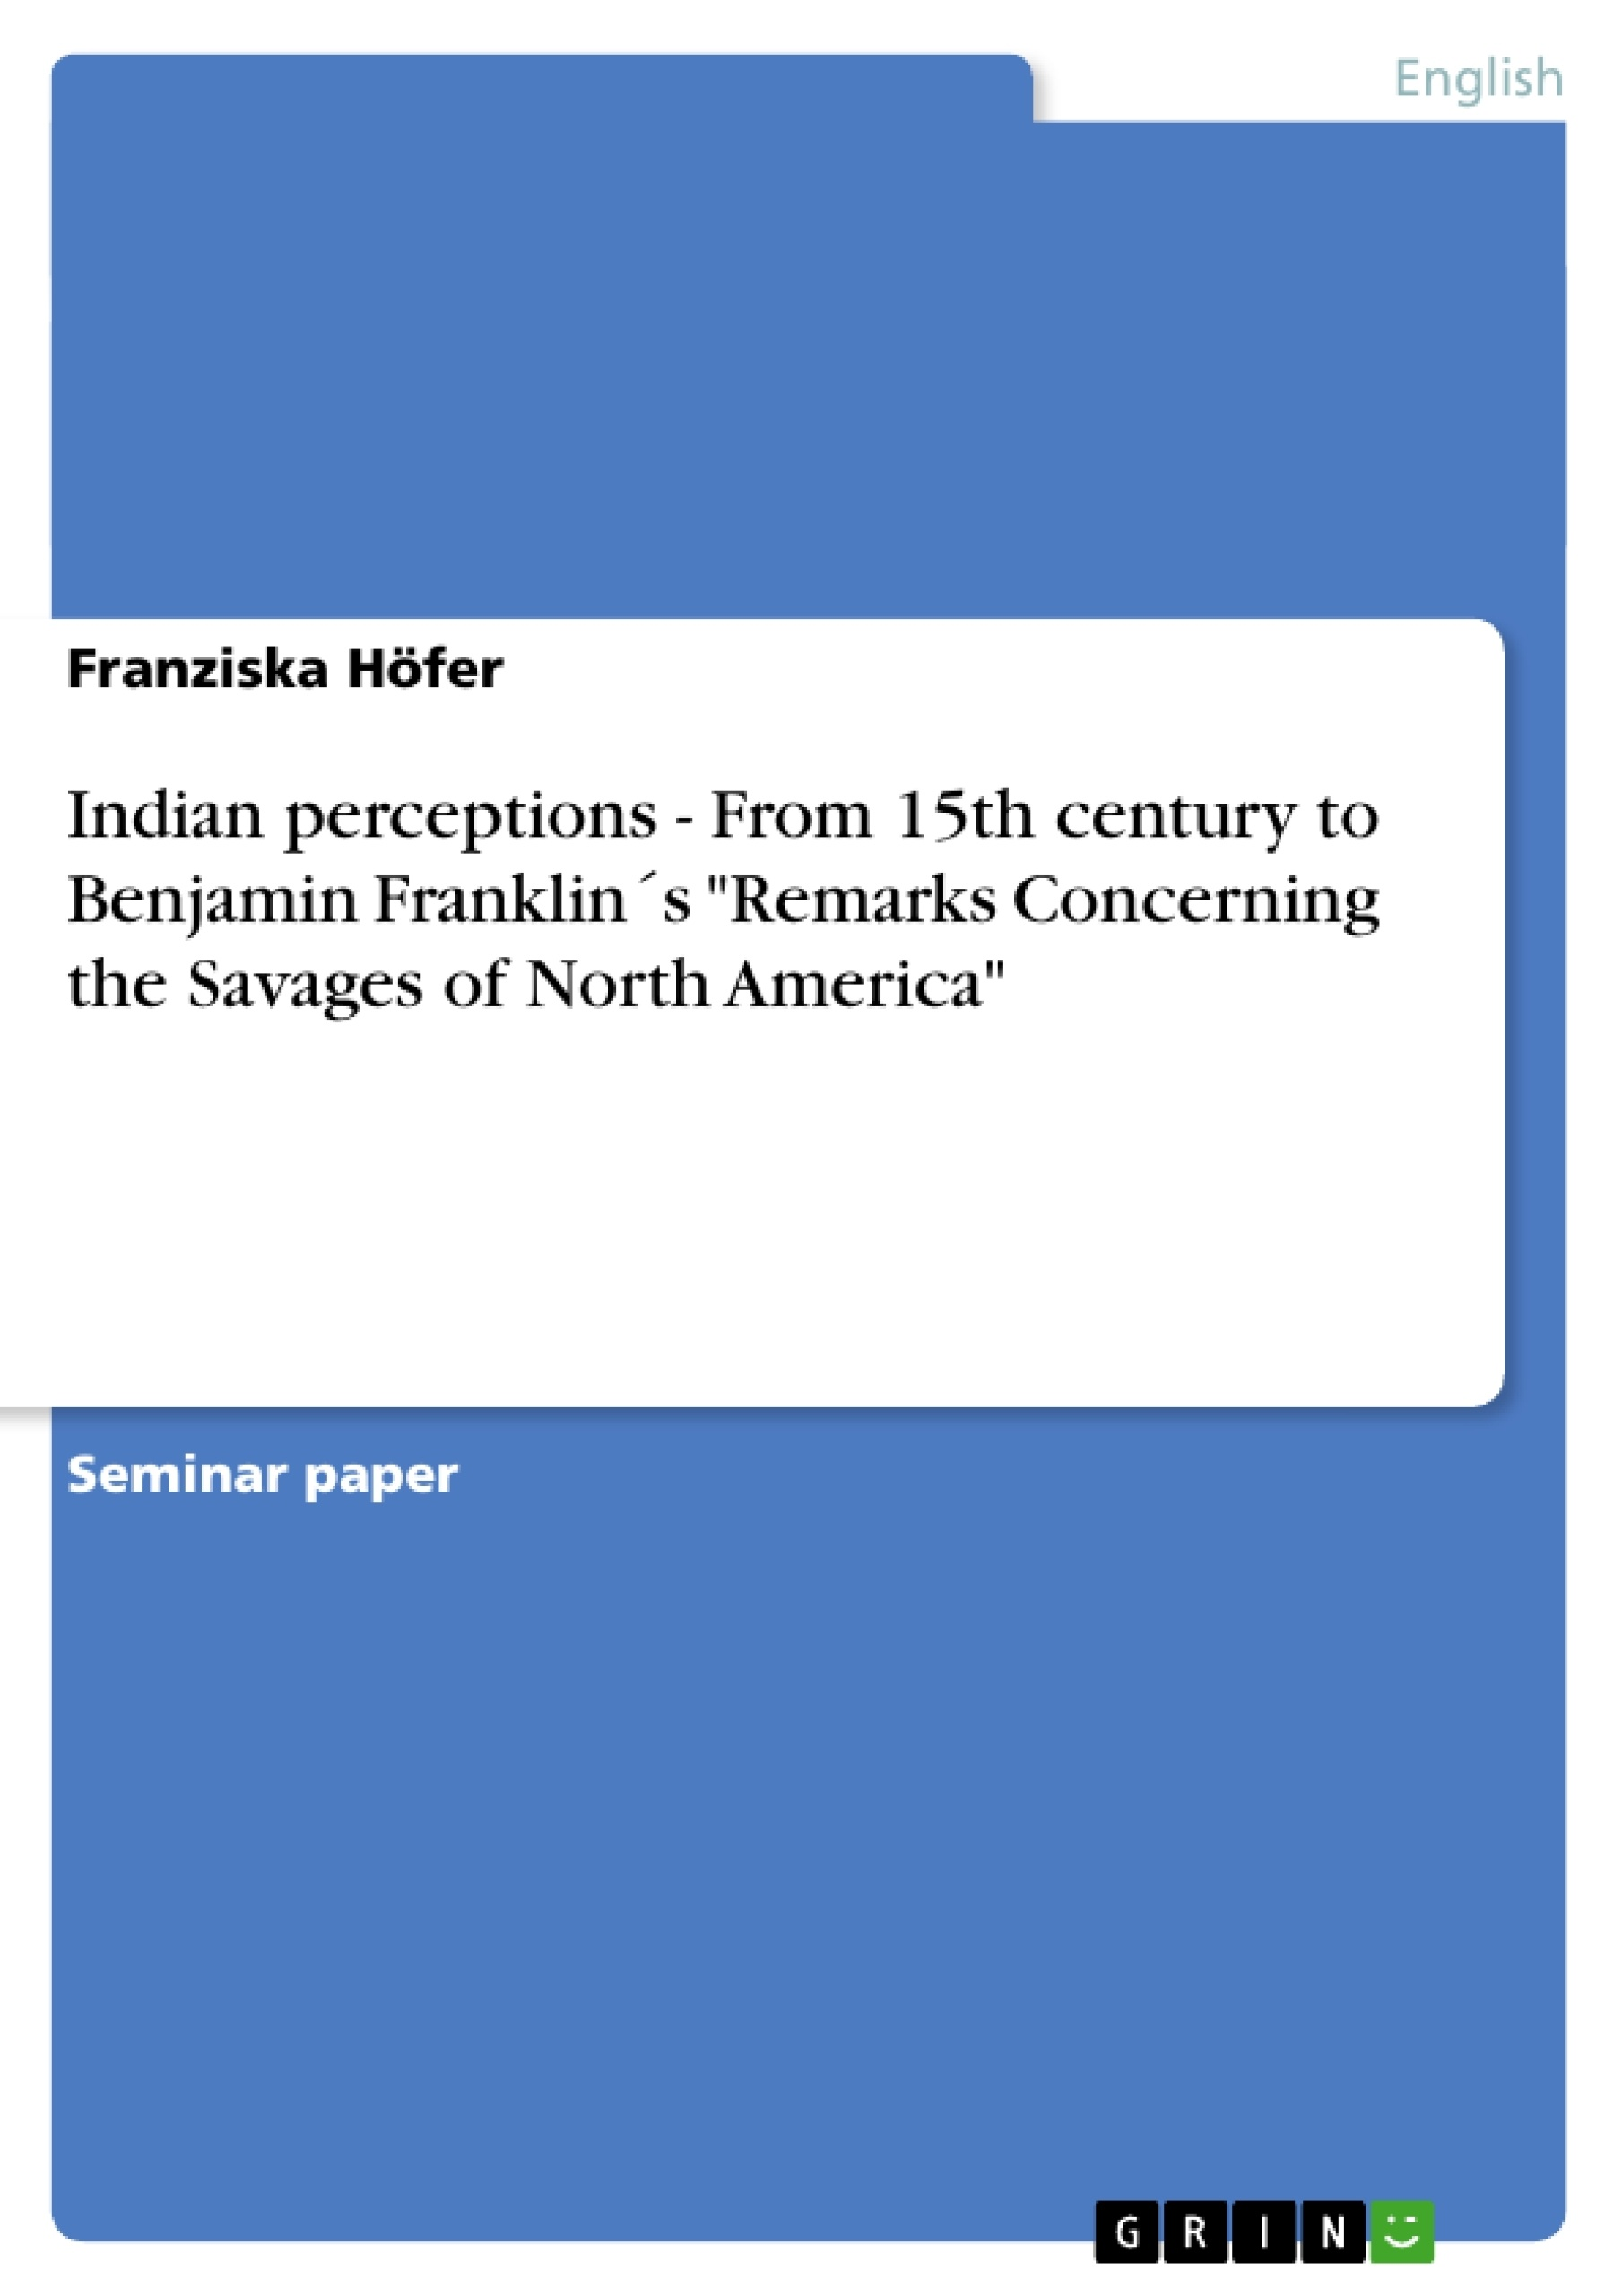 benjamin franklin by edmund morgan essay One of the most famous biographies ever written is said to be made by edmund morgan, when he accounted that of benjamin franklin's life he did so by presenting a very special style in analyzing franklin's existence.